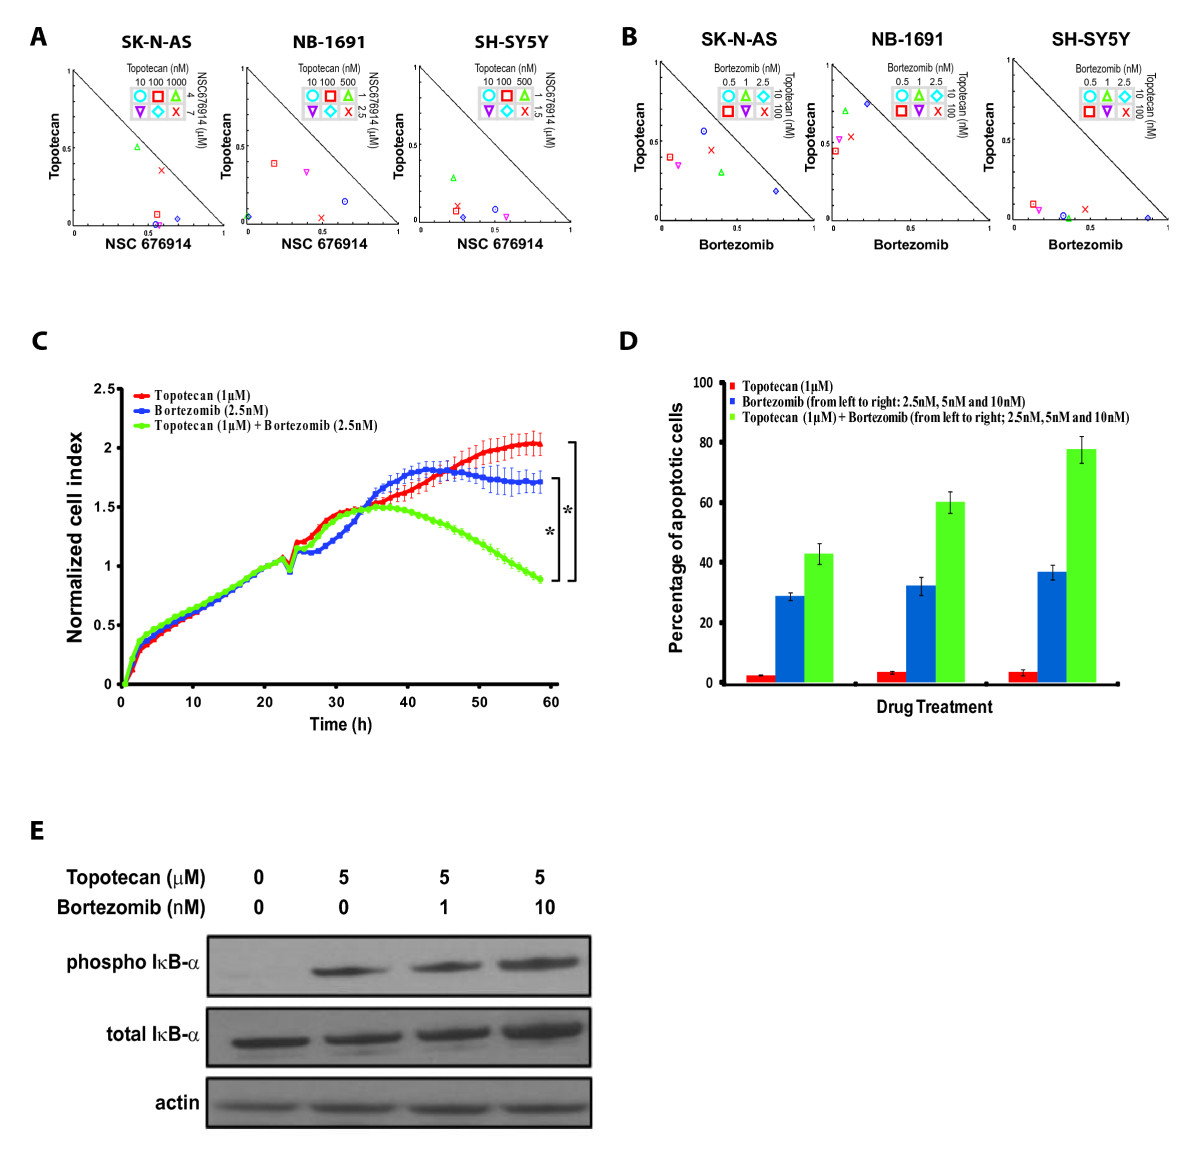 https://static-content.springer.com/image/art%3A10.1186%2F1471-2407-12-101/MediaObjects/12885_2011_Article_3153_Fig2_HTML.jpg